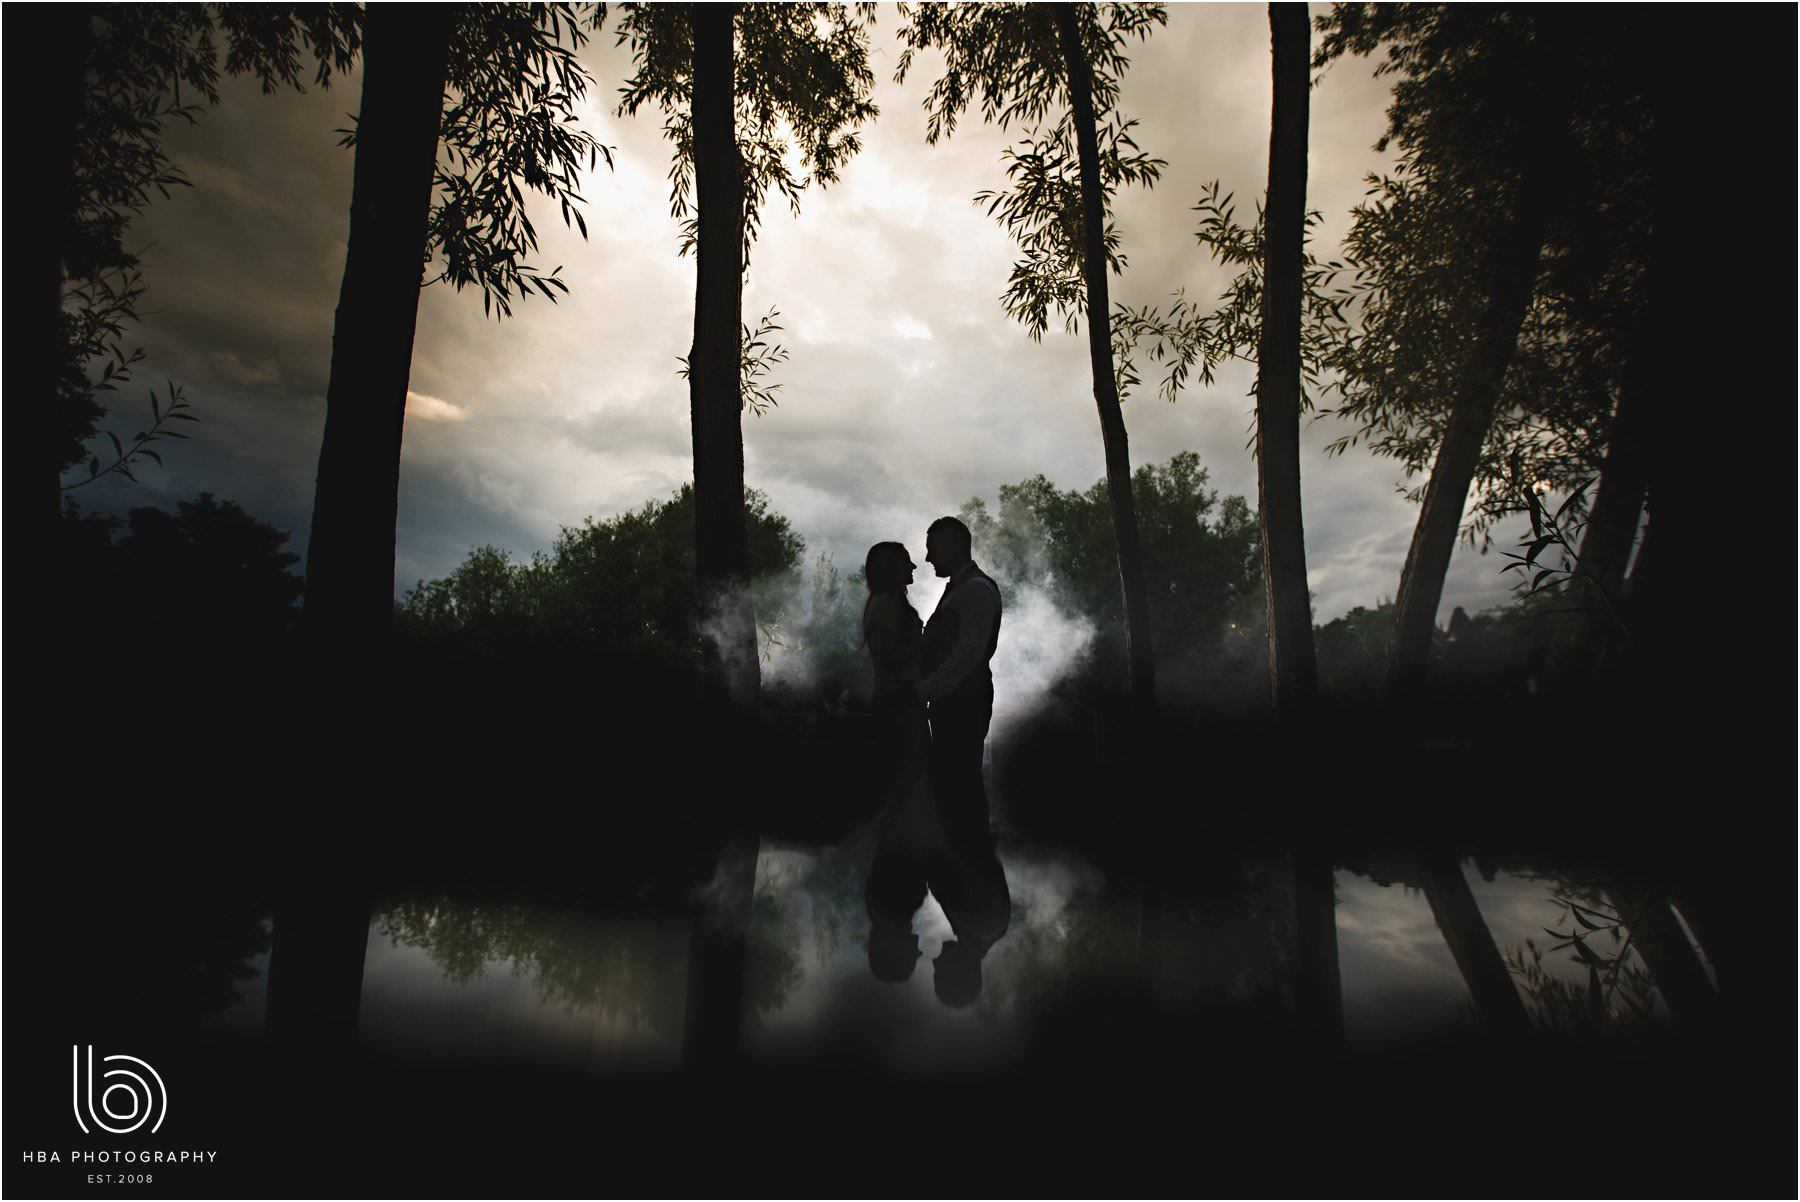 the bride & groom in the mist